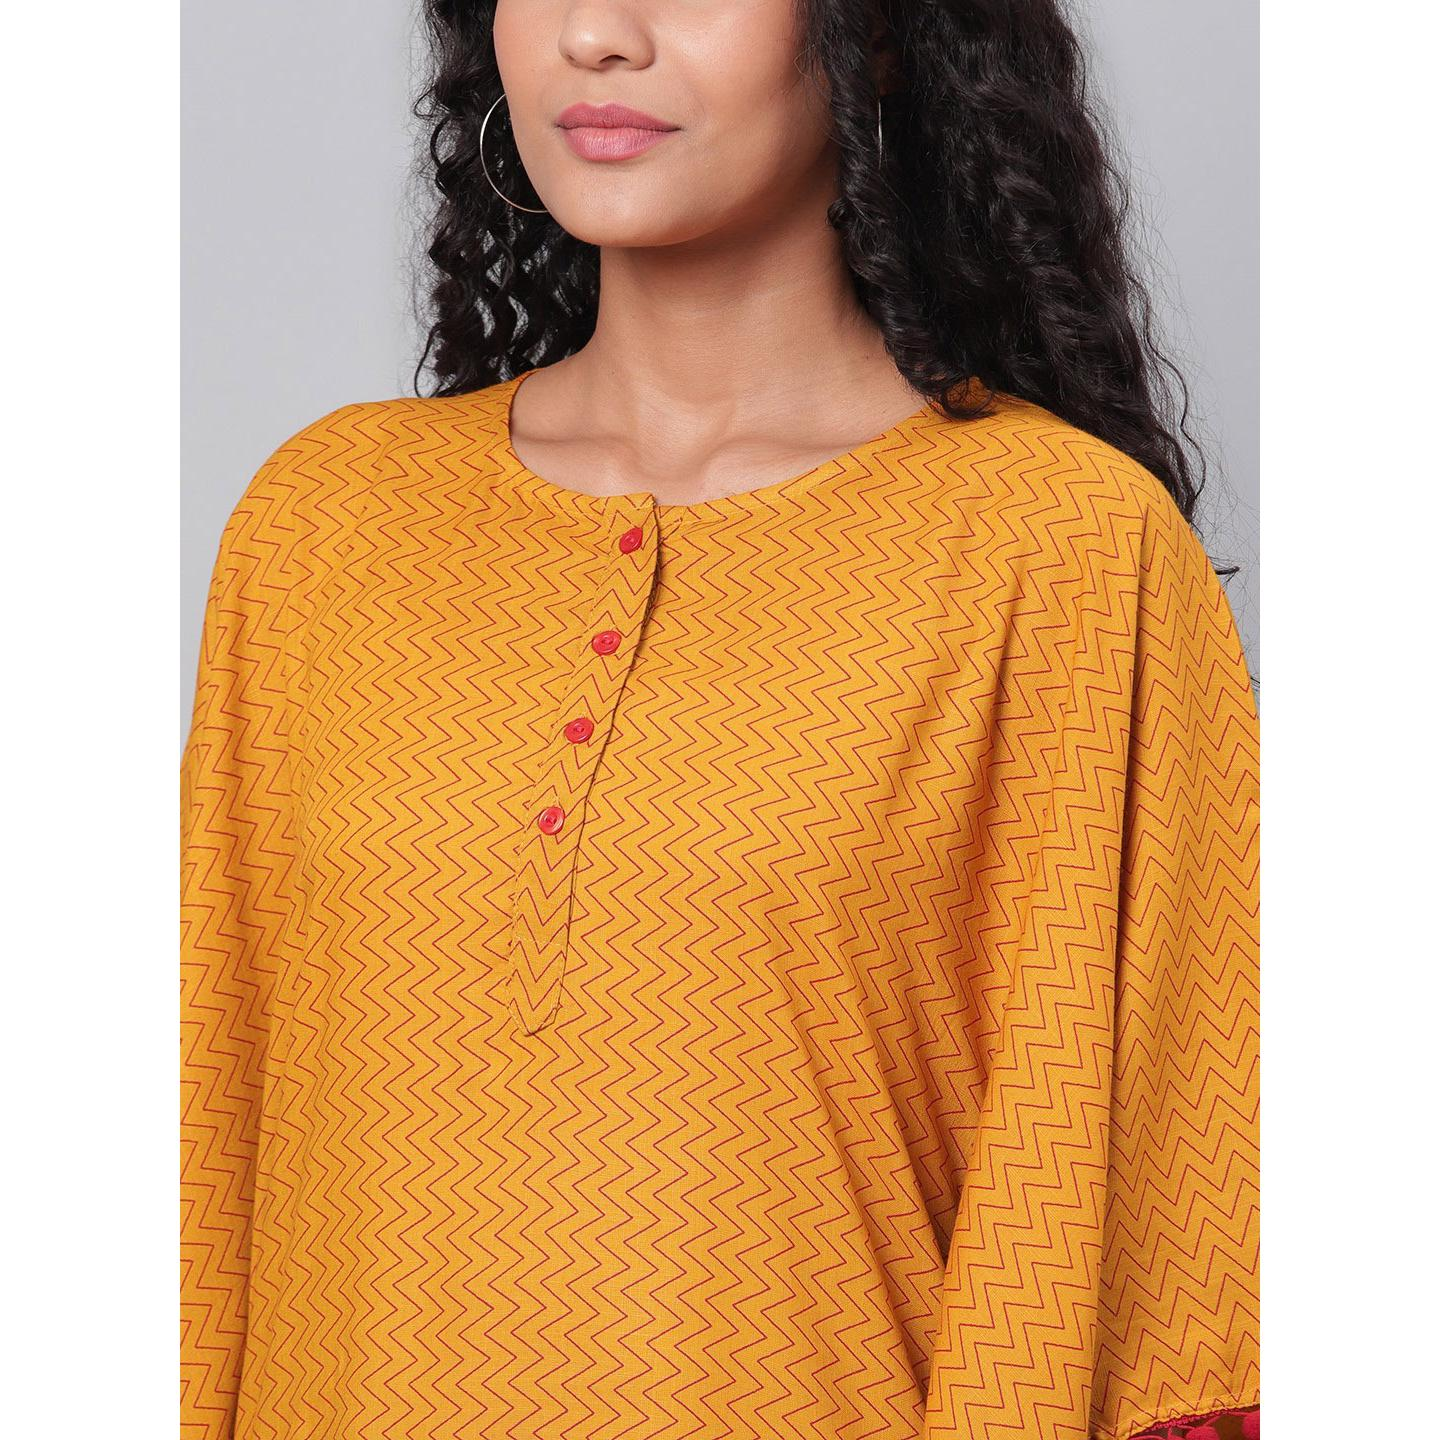 Myshka - Women's Yellow Printed Casual Cotton Kaftaan Top